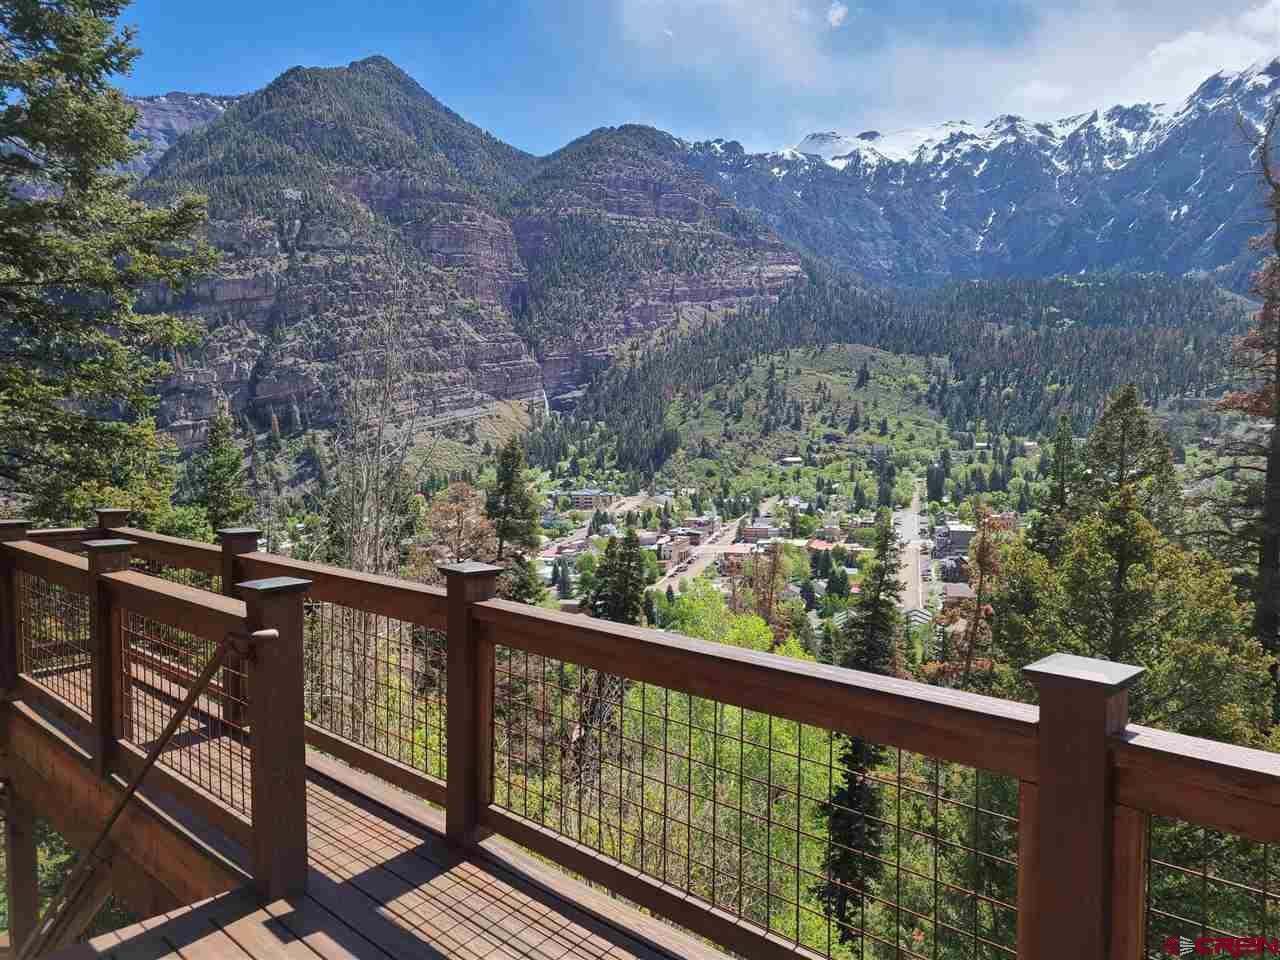 The most fabulous views above Ouray and complete privacy! 4.4 acres bordering National Forest on two sides with a 10 acre green belt below the home. Walk inside to luxury! 3 bedrooms, one with bunks, 4 full bathrooms, stone fireplace with crystals, deck looking out over Ouray and surrounding mountains, hot tub on lower patio, and a charming gas firepit on the side of the hill. Comes completely furnished - bring your toothbrush.